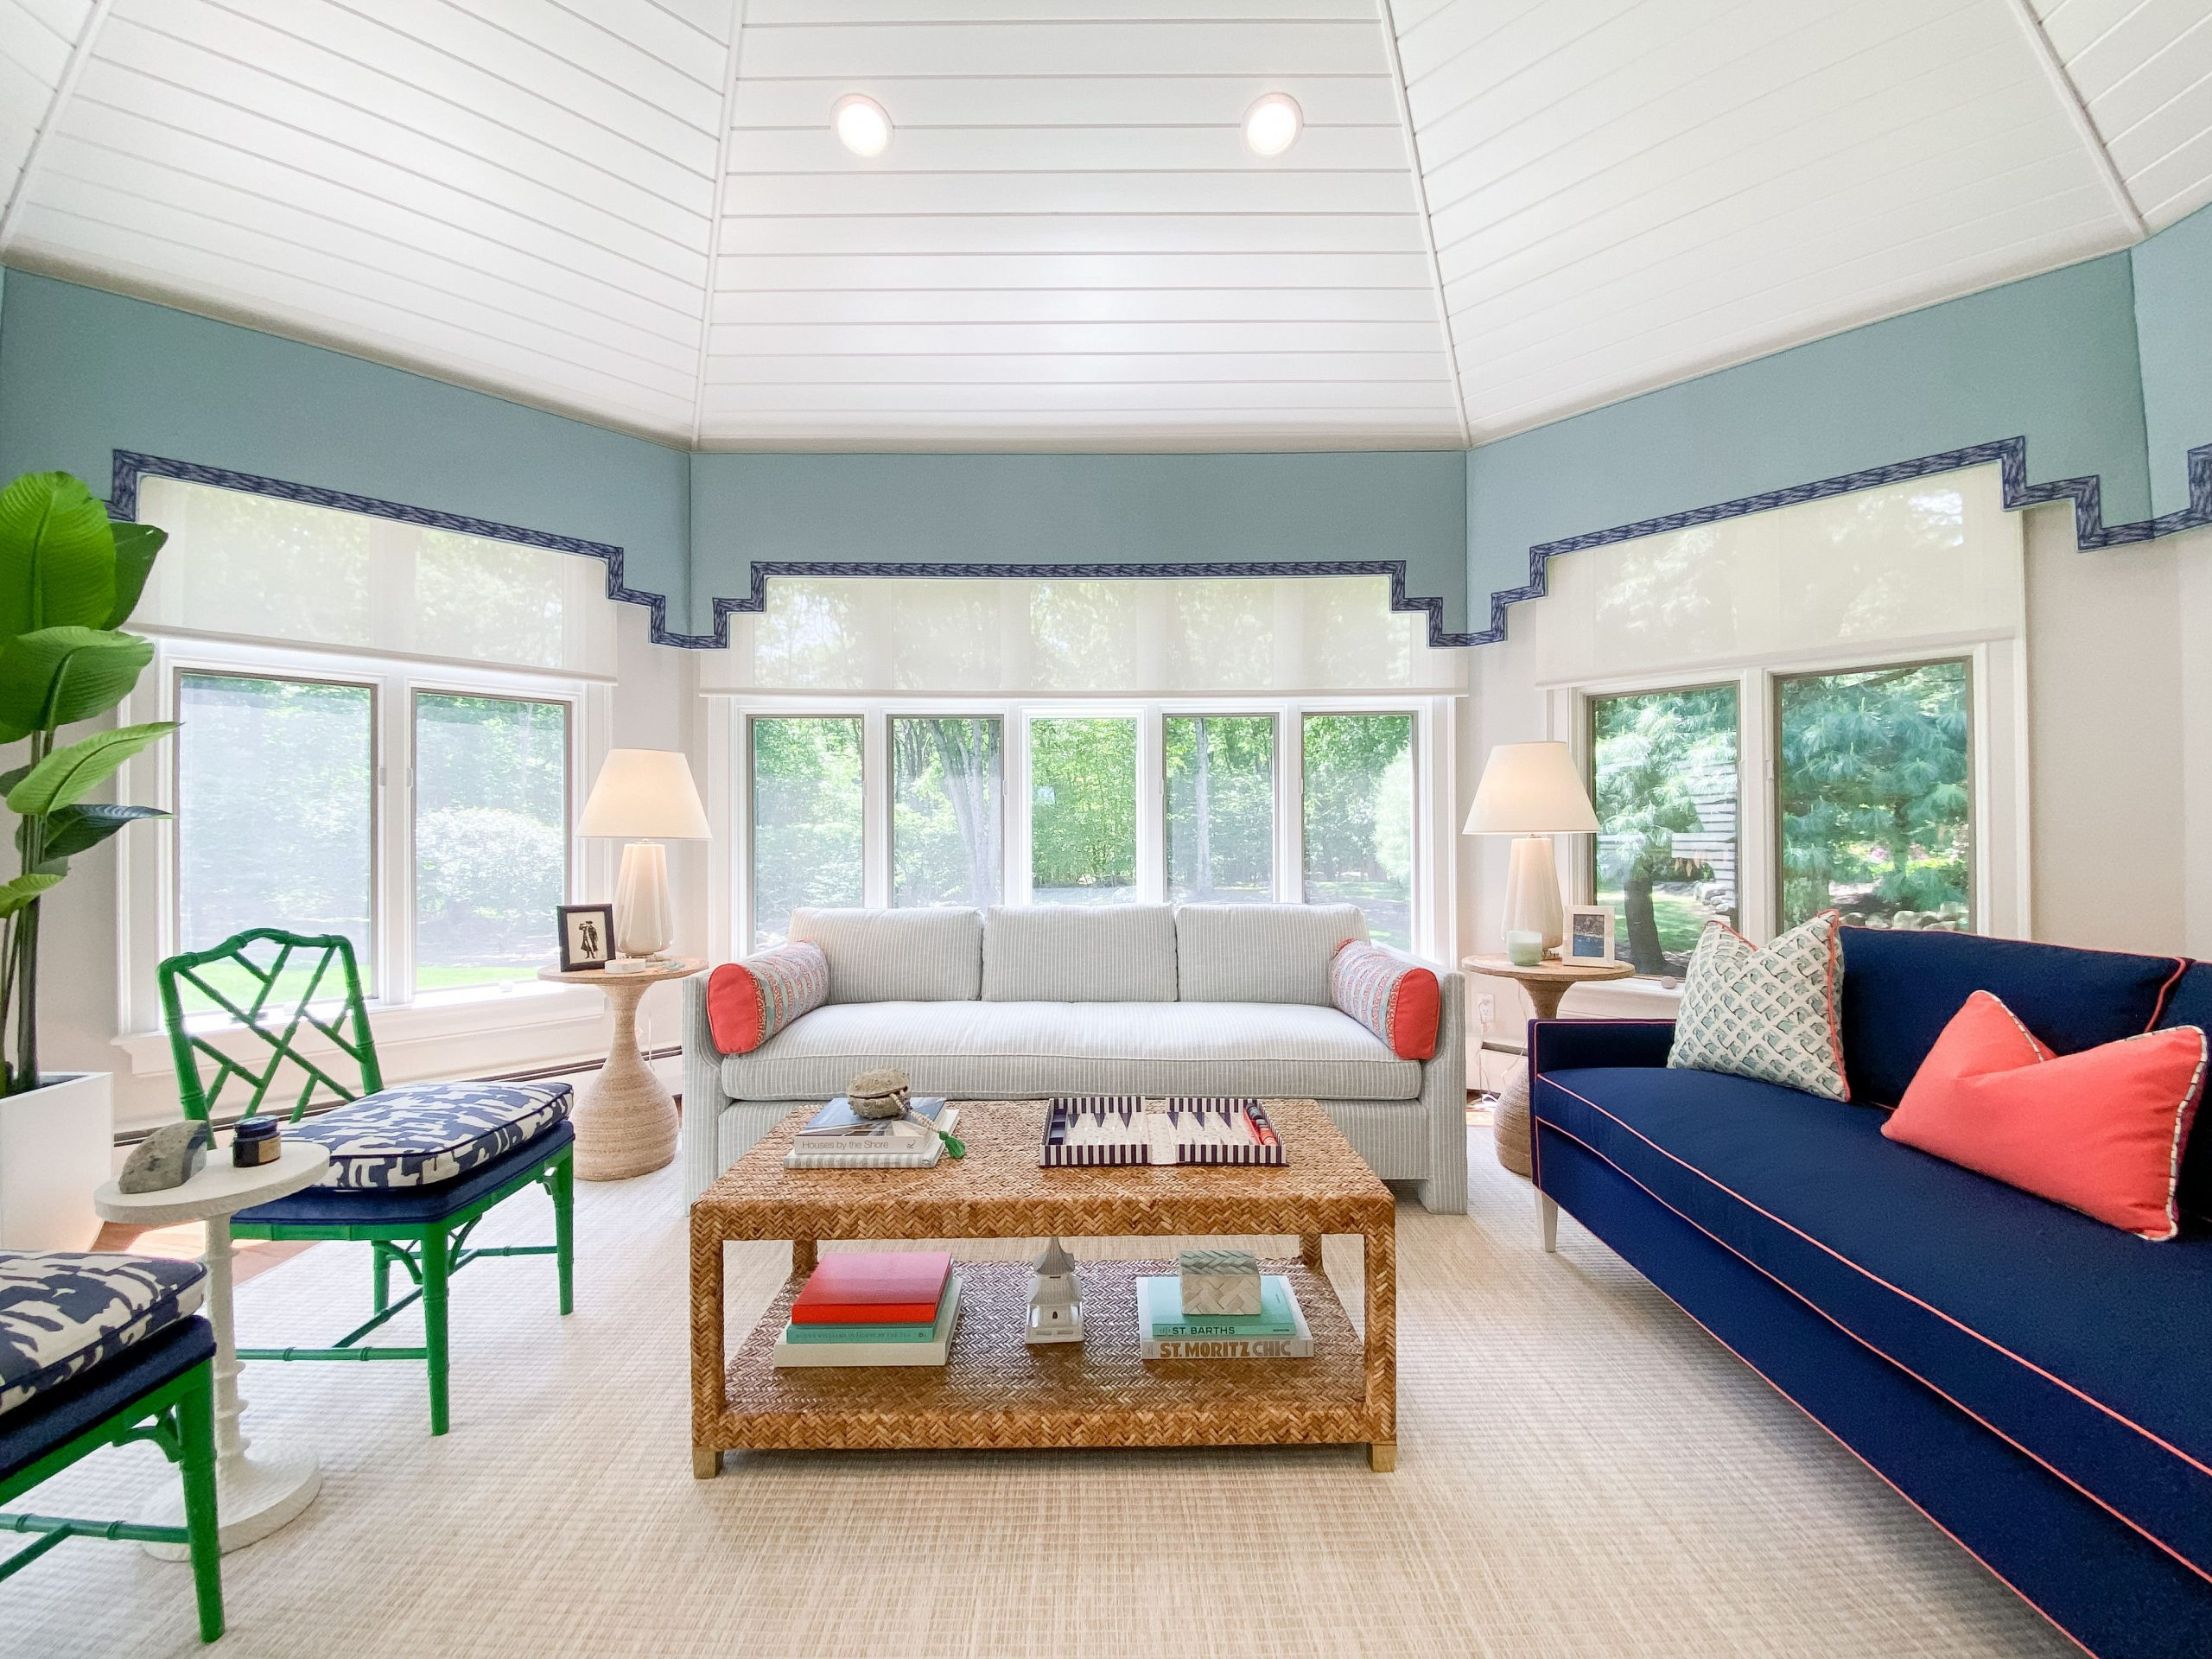 blakely interior design kingstown ri sunrooms and summer homes in new england vibrant green accents blue sofa coral pillow large woven coffee table